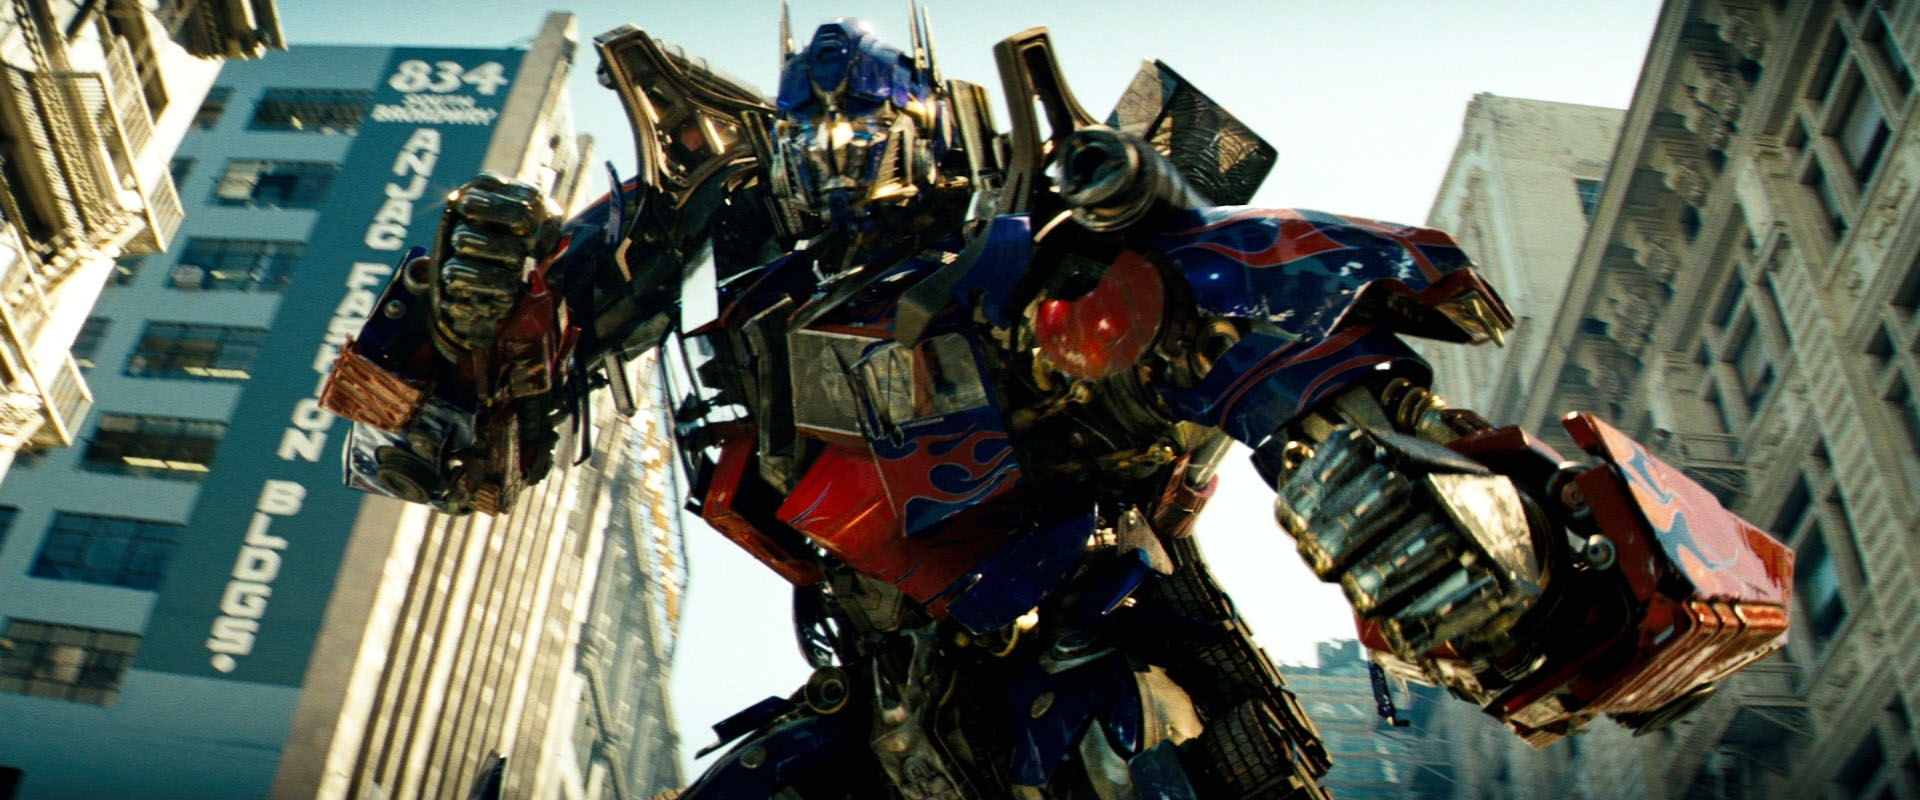 paramount adds a fresh coat of paint to 'transformers' 1-4 with 4k